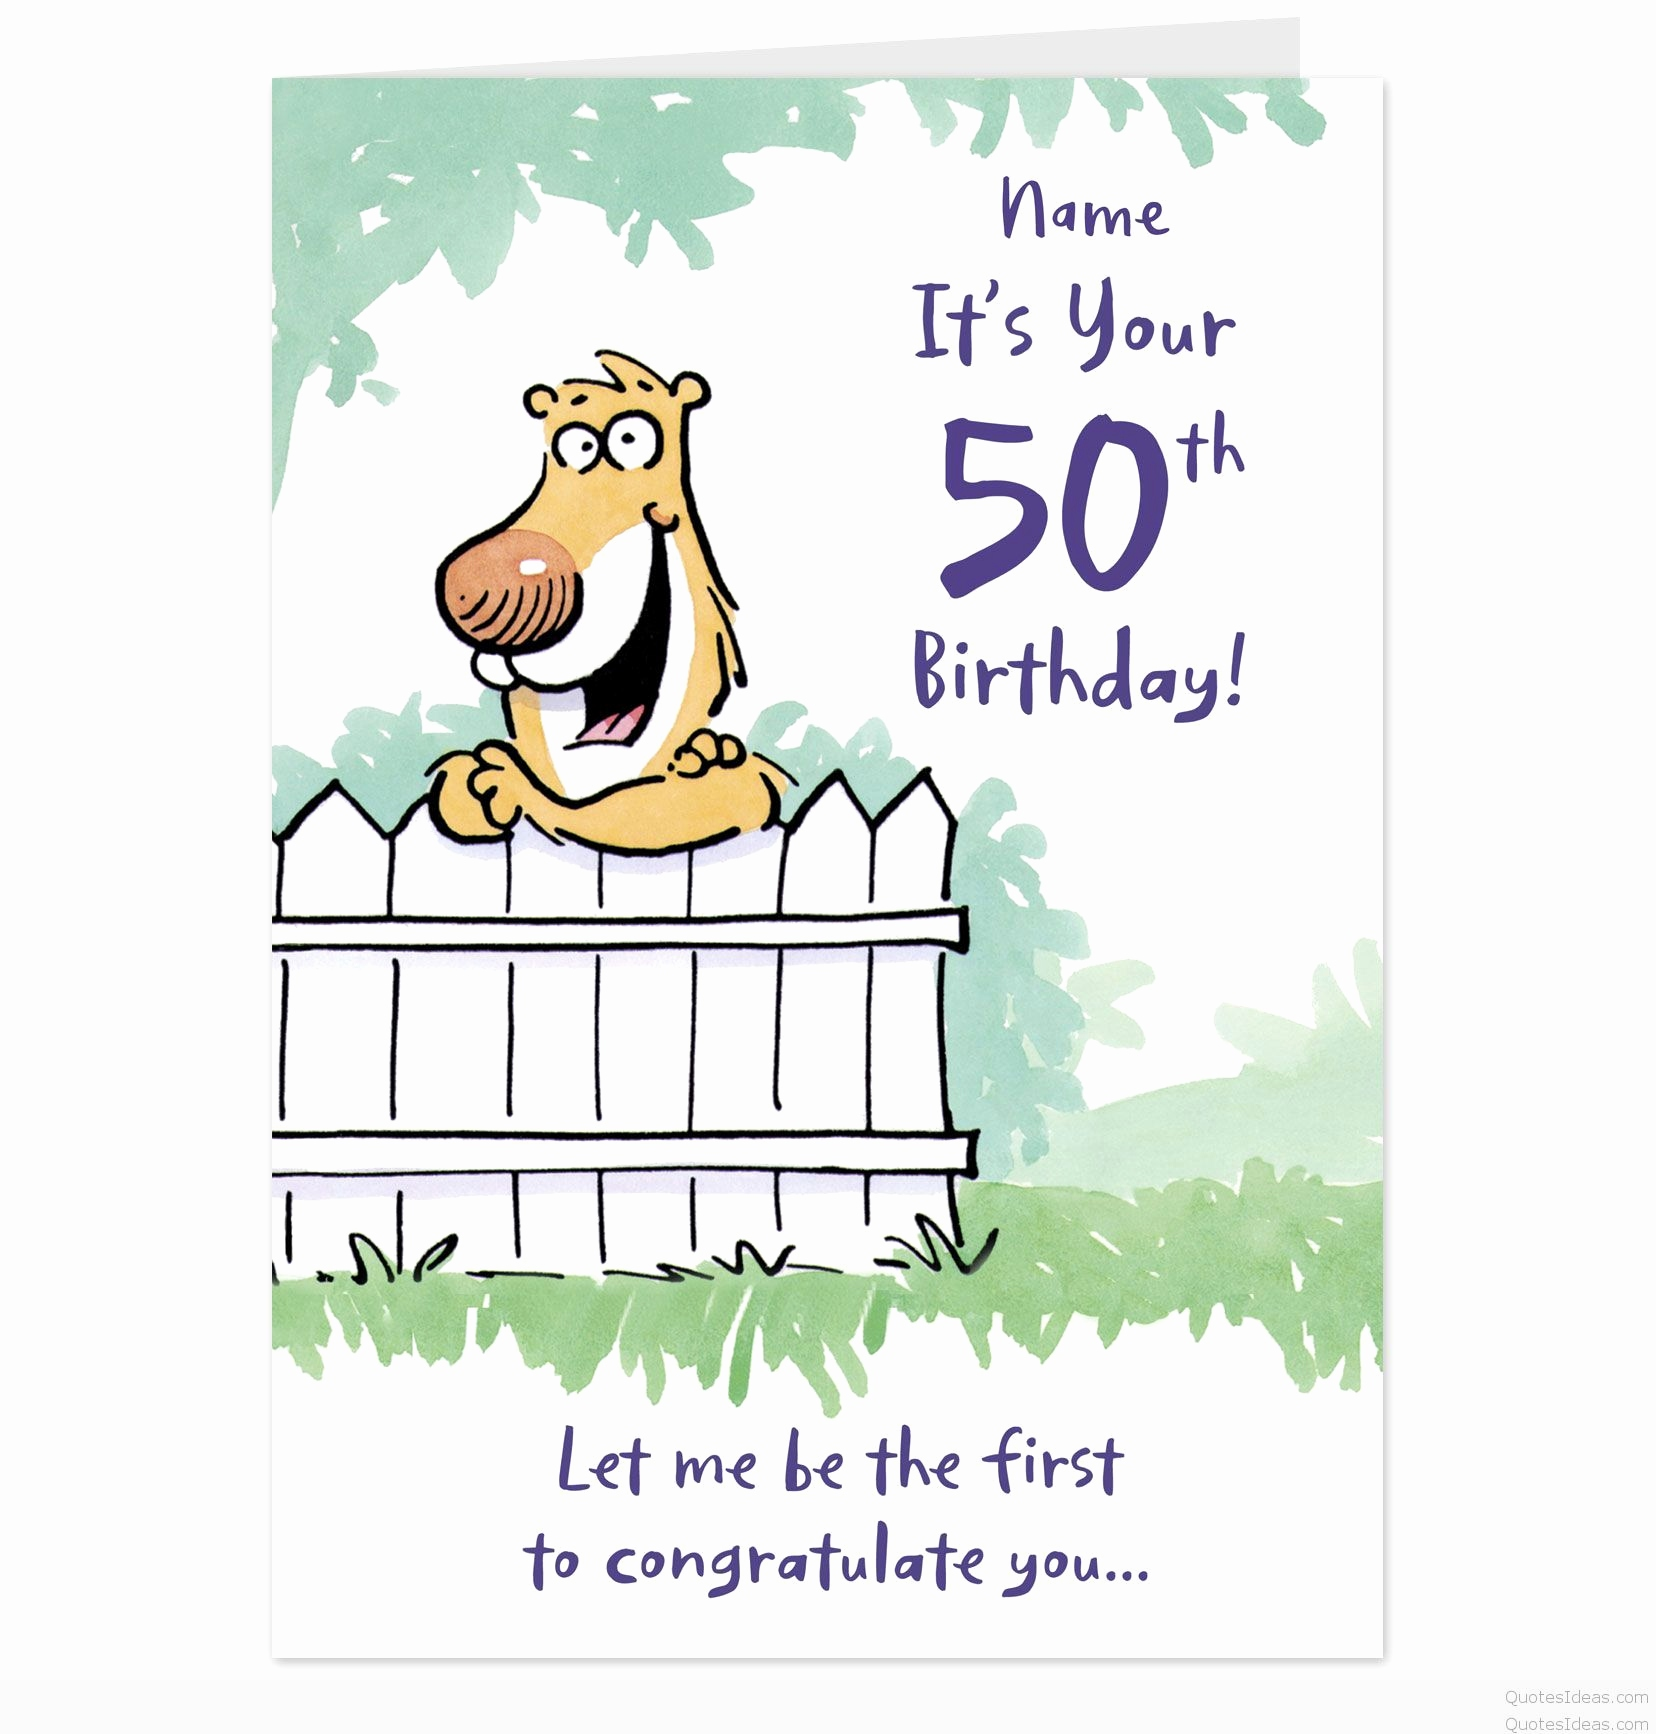 funny birthday card quotes ; funny-birthday-card-quotes-unique-birthday-card-messages-for-friends-funny-alanarasbach-of-funny-birthday-card-quotes